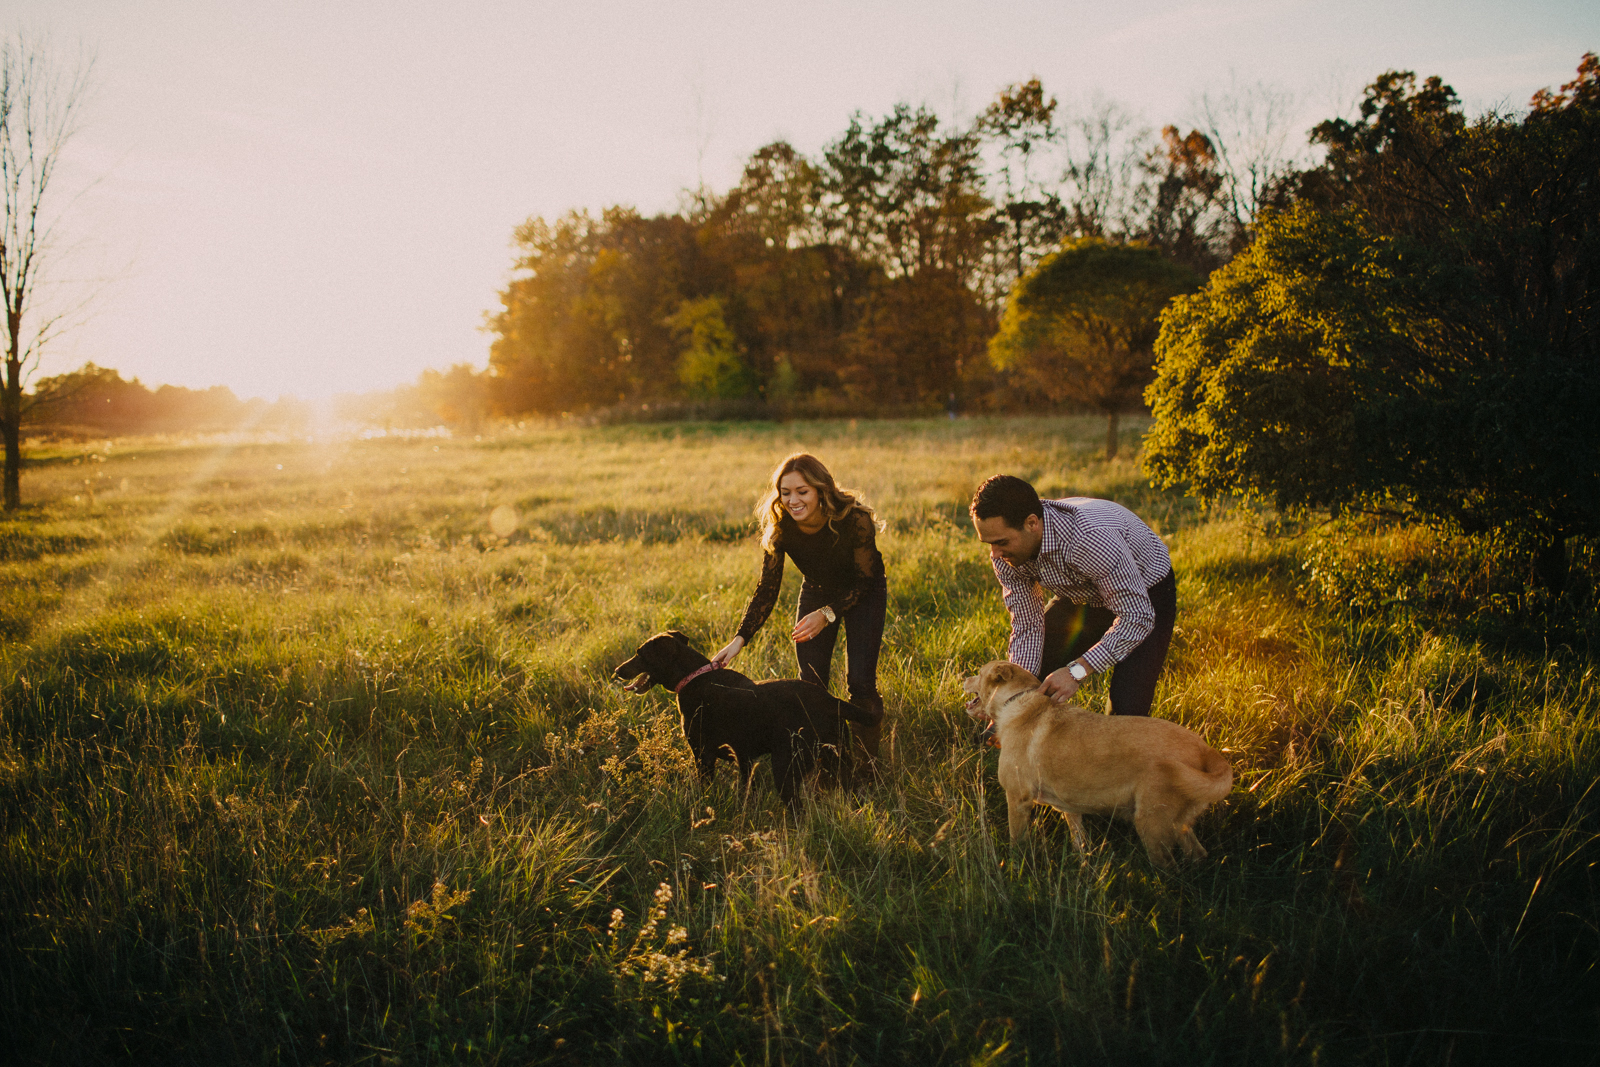 matea state park indiana fort wayne engagement session sarah cusson photography-38.jpg